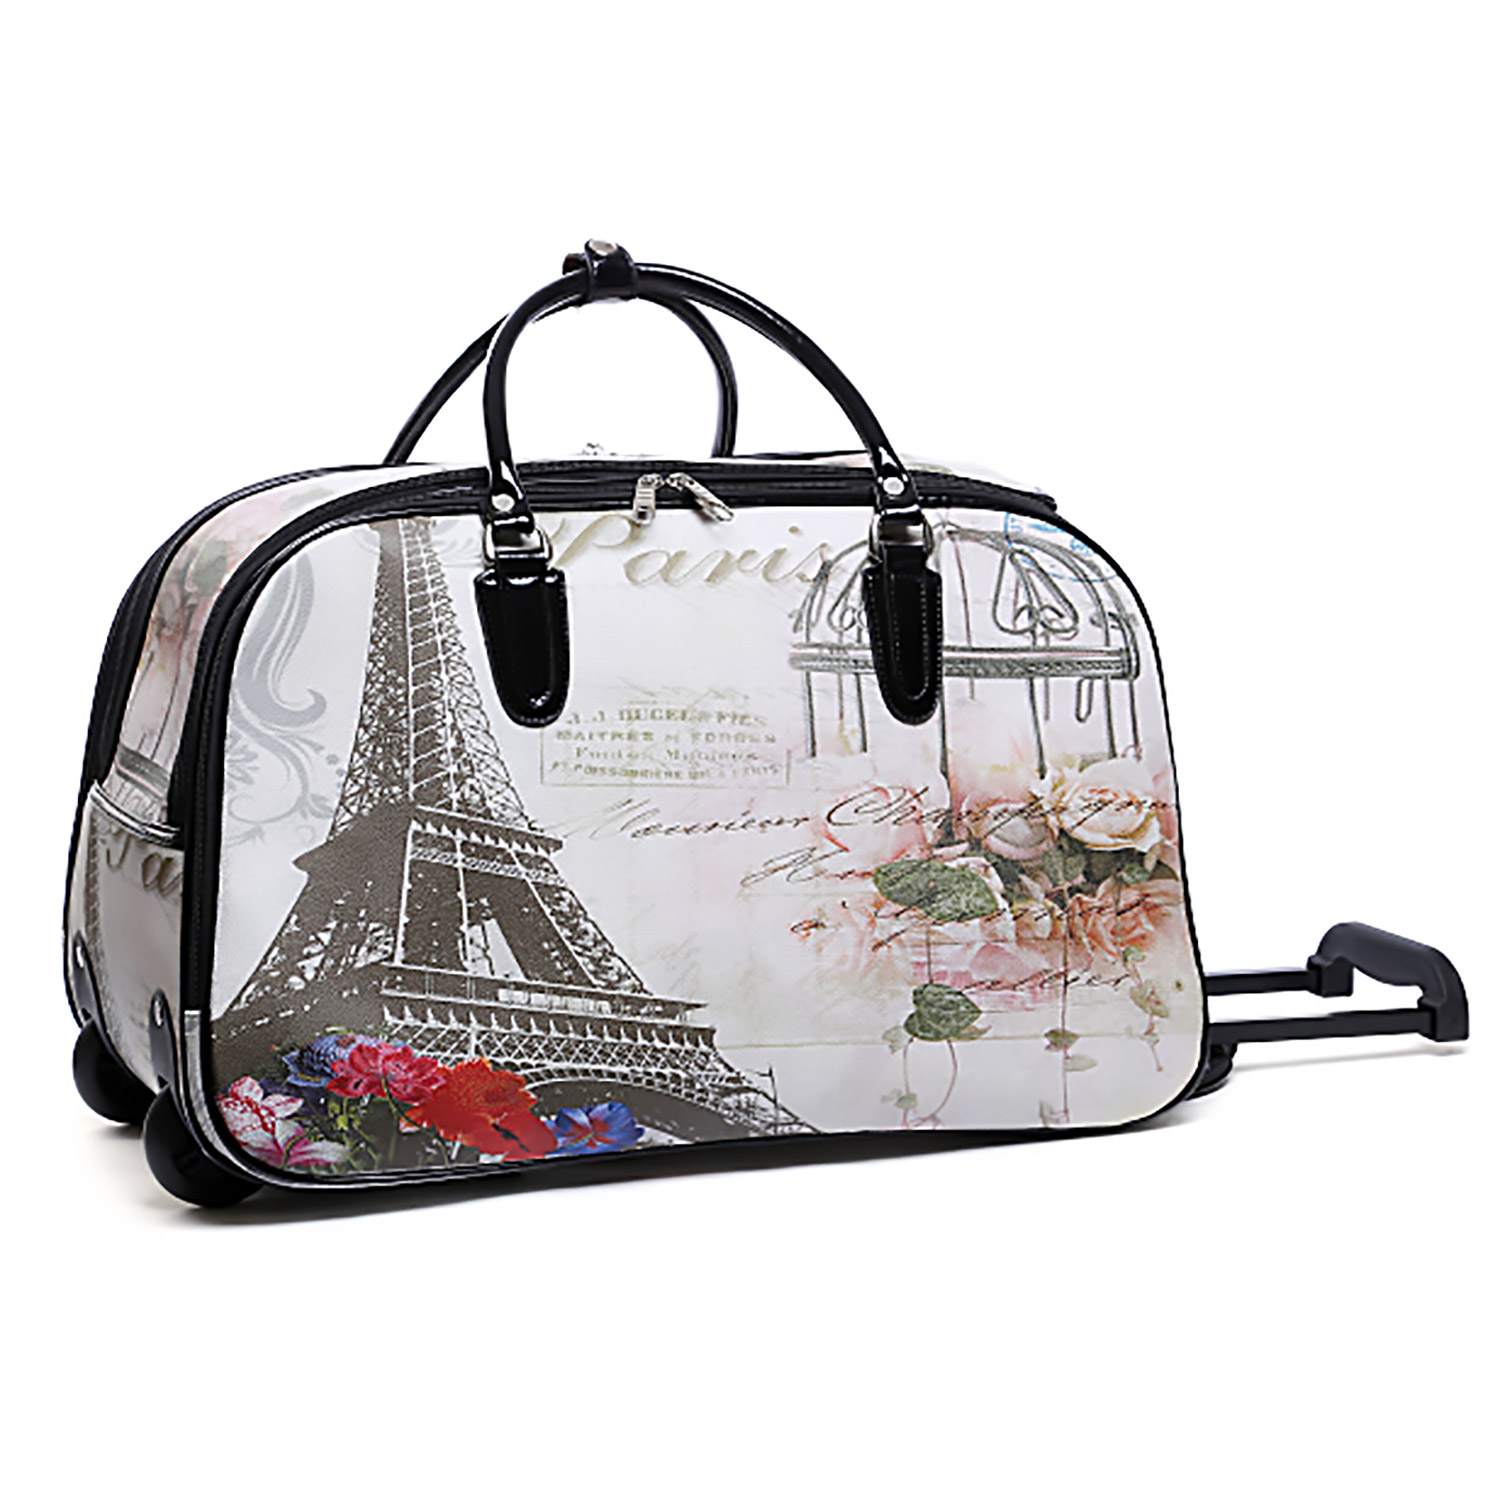 180ef4030c1e Wholesale P26 Rolling duffle bag Eiffel Tower w  Roses